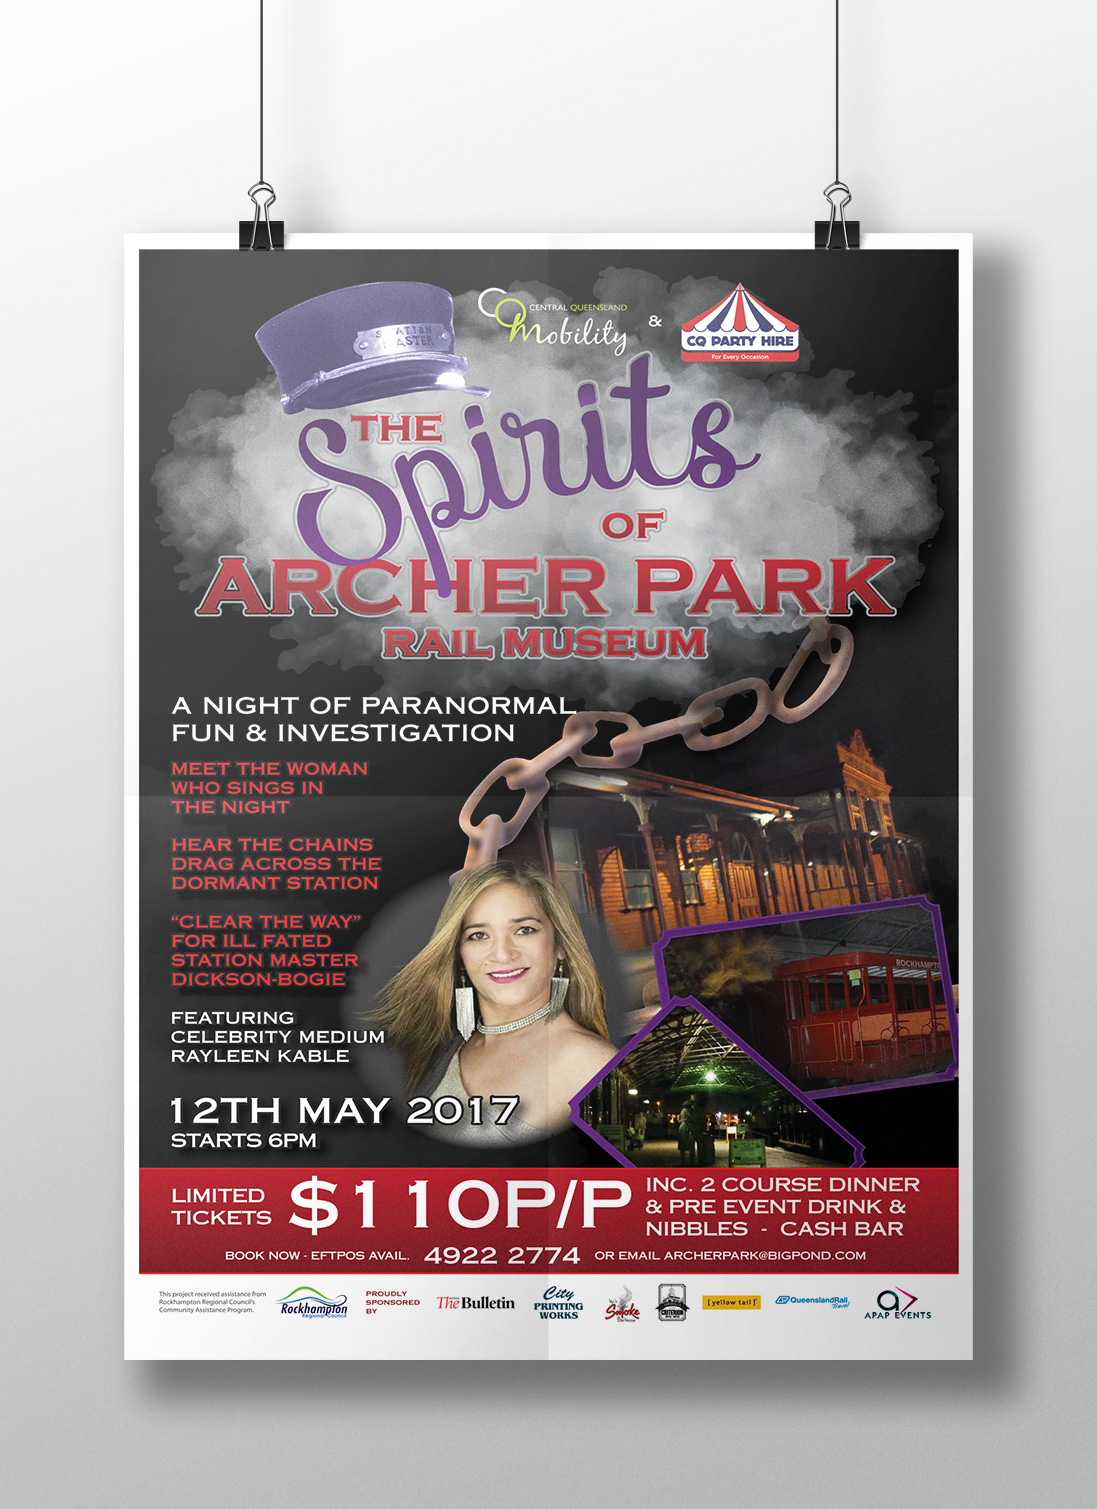 APAP Events Event Management and Graphic Design Rockhampton Spirits of Archer Park Poster and Logo Design